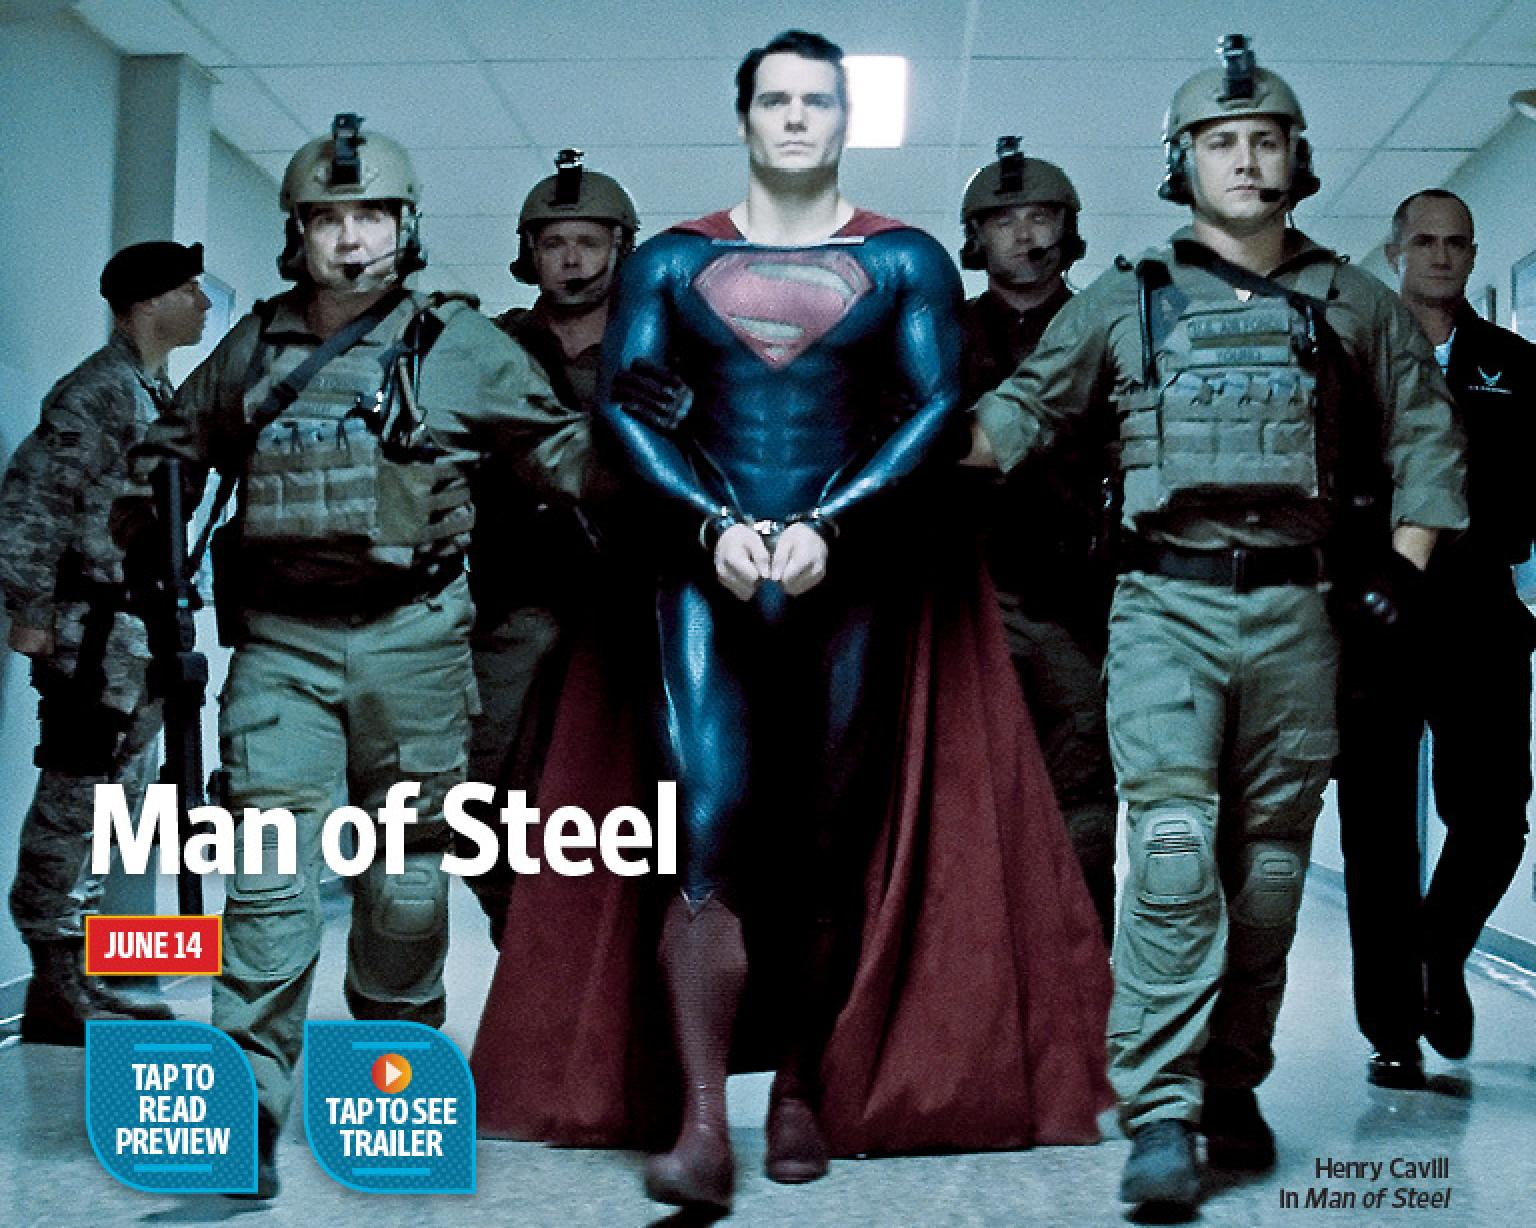 entertainment weekly man of steel Brand New Still of Superman in Superman: Man of Steel